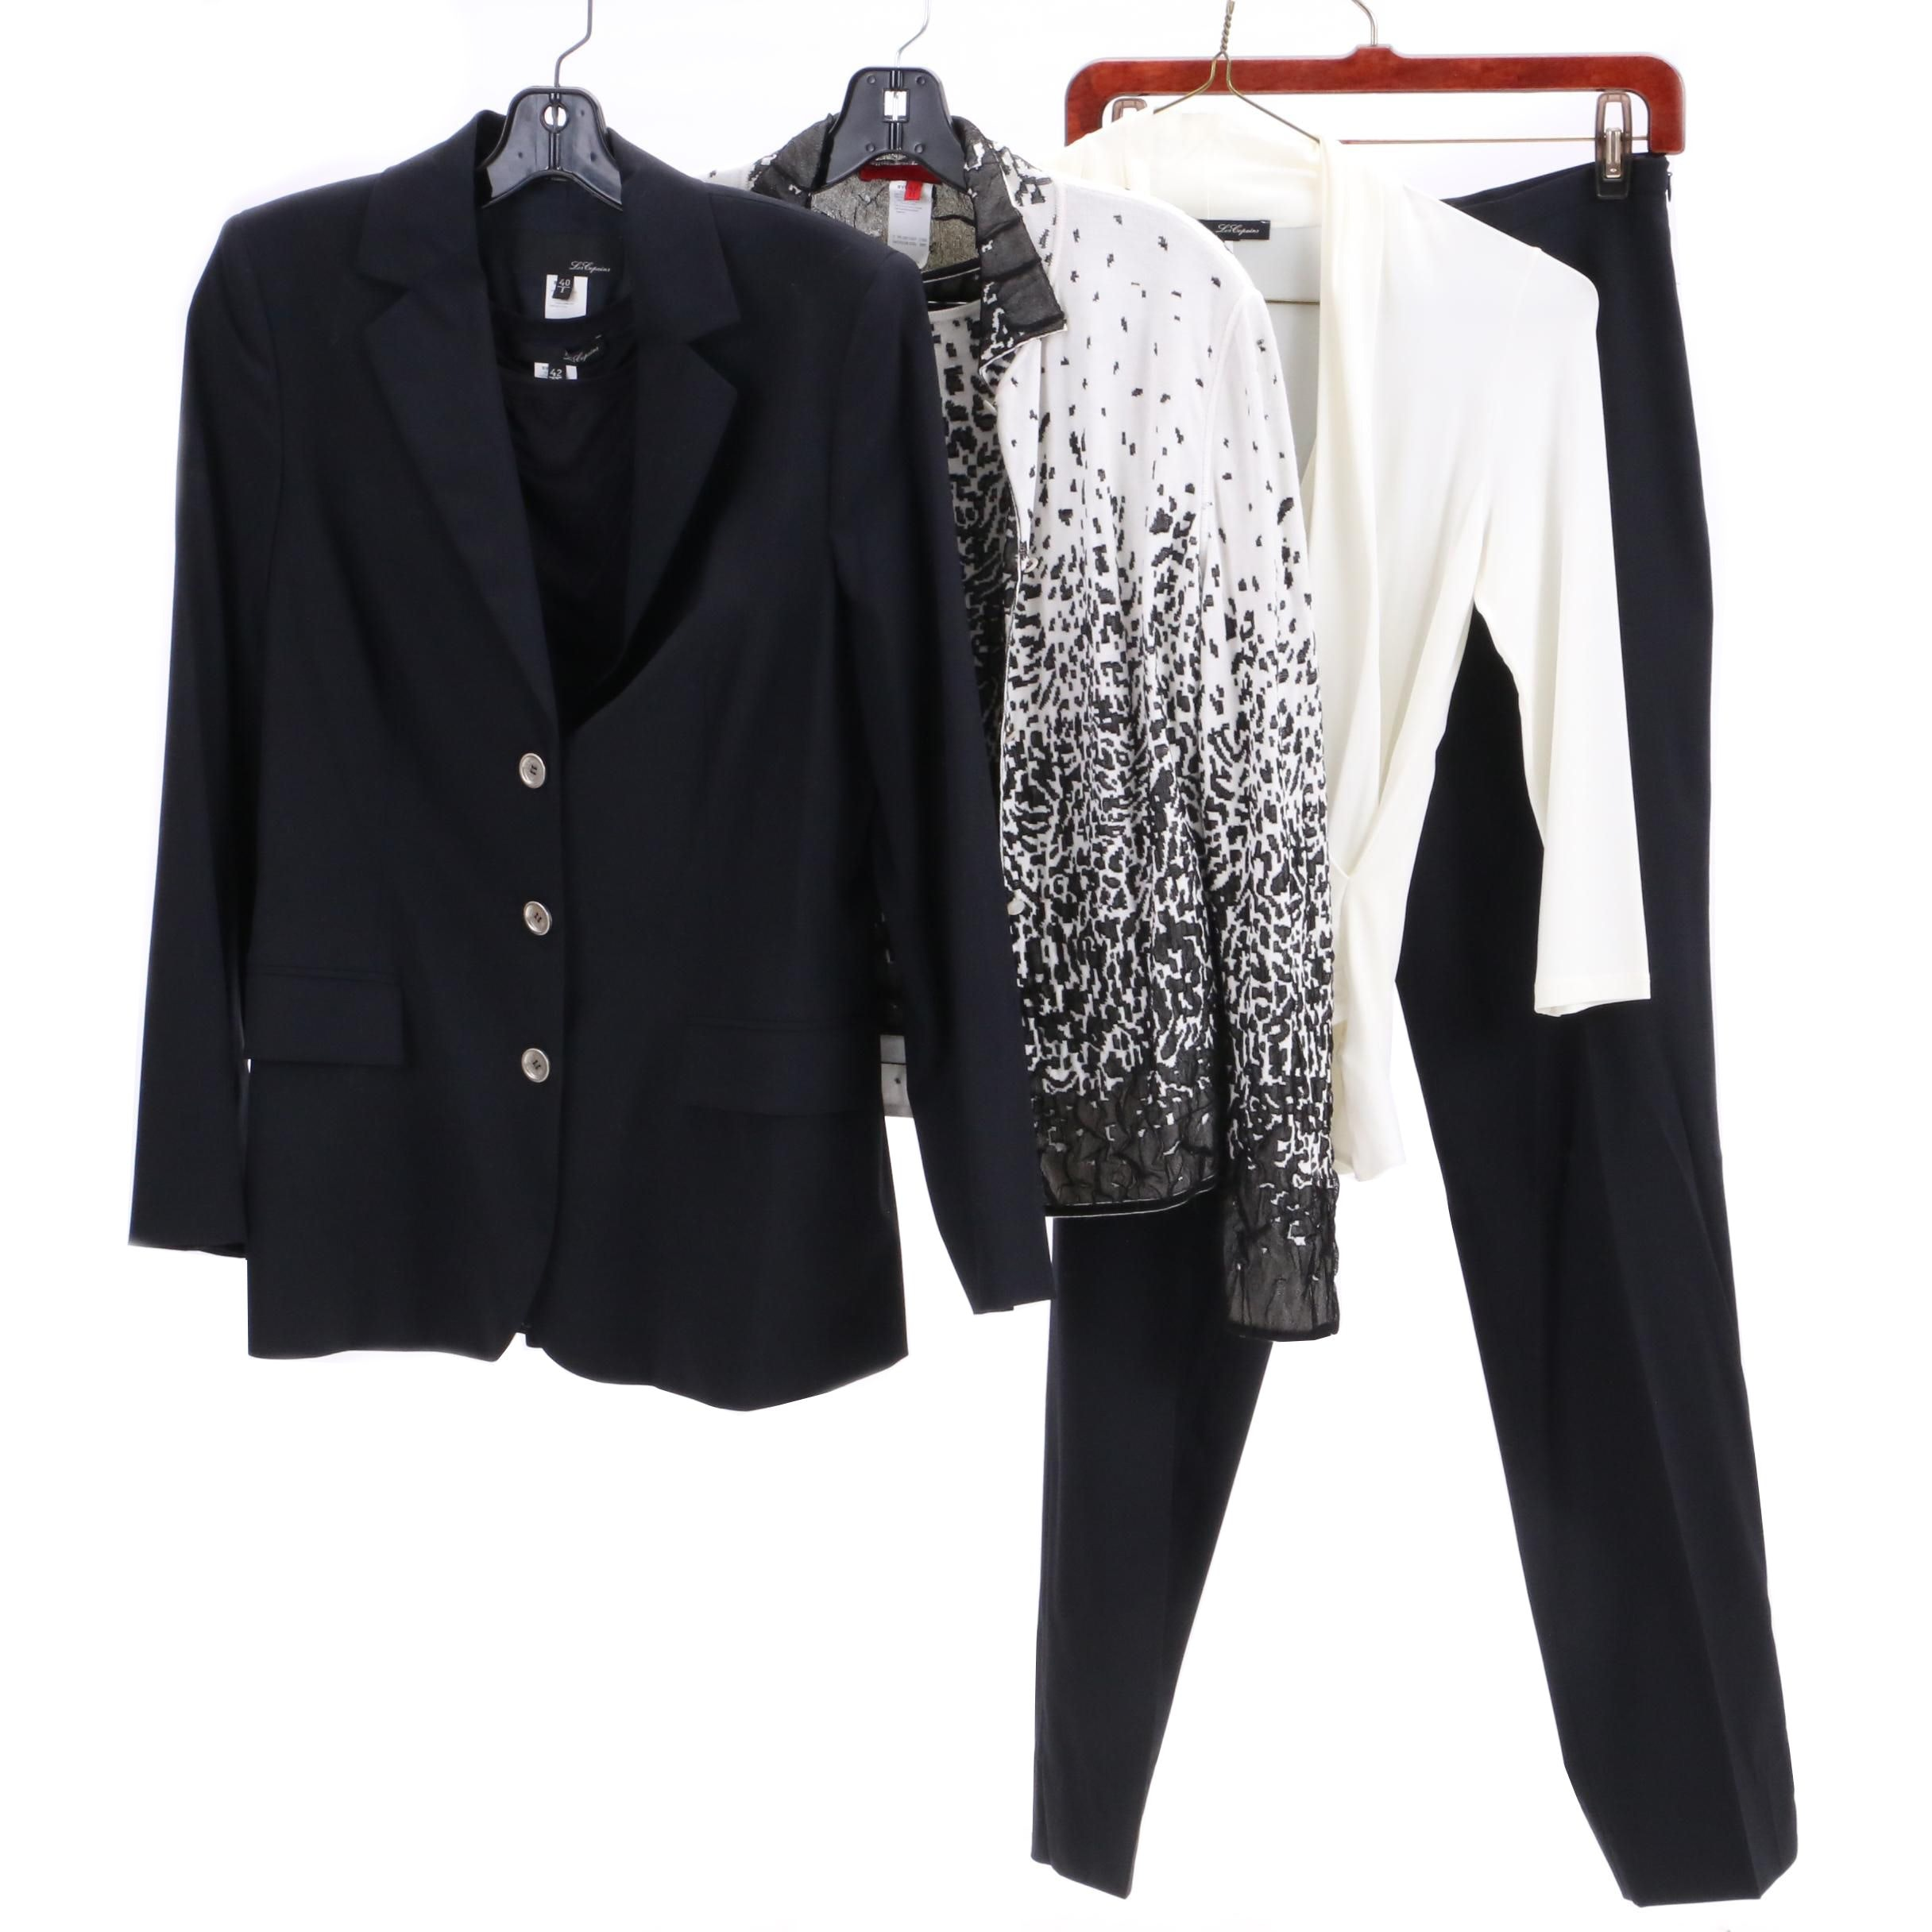 Les Copains Black Wool Blend Suit and Other Clothing Separates